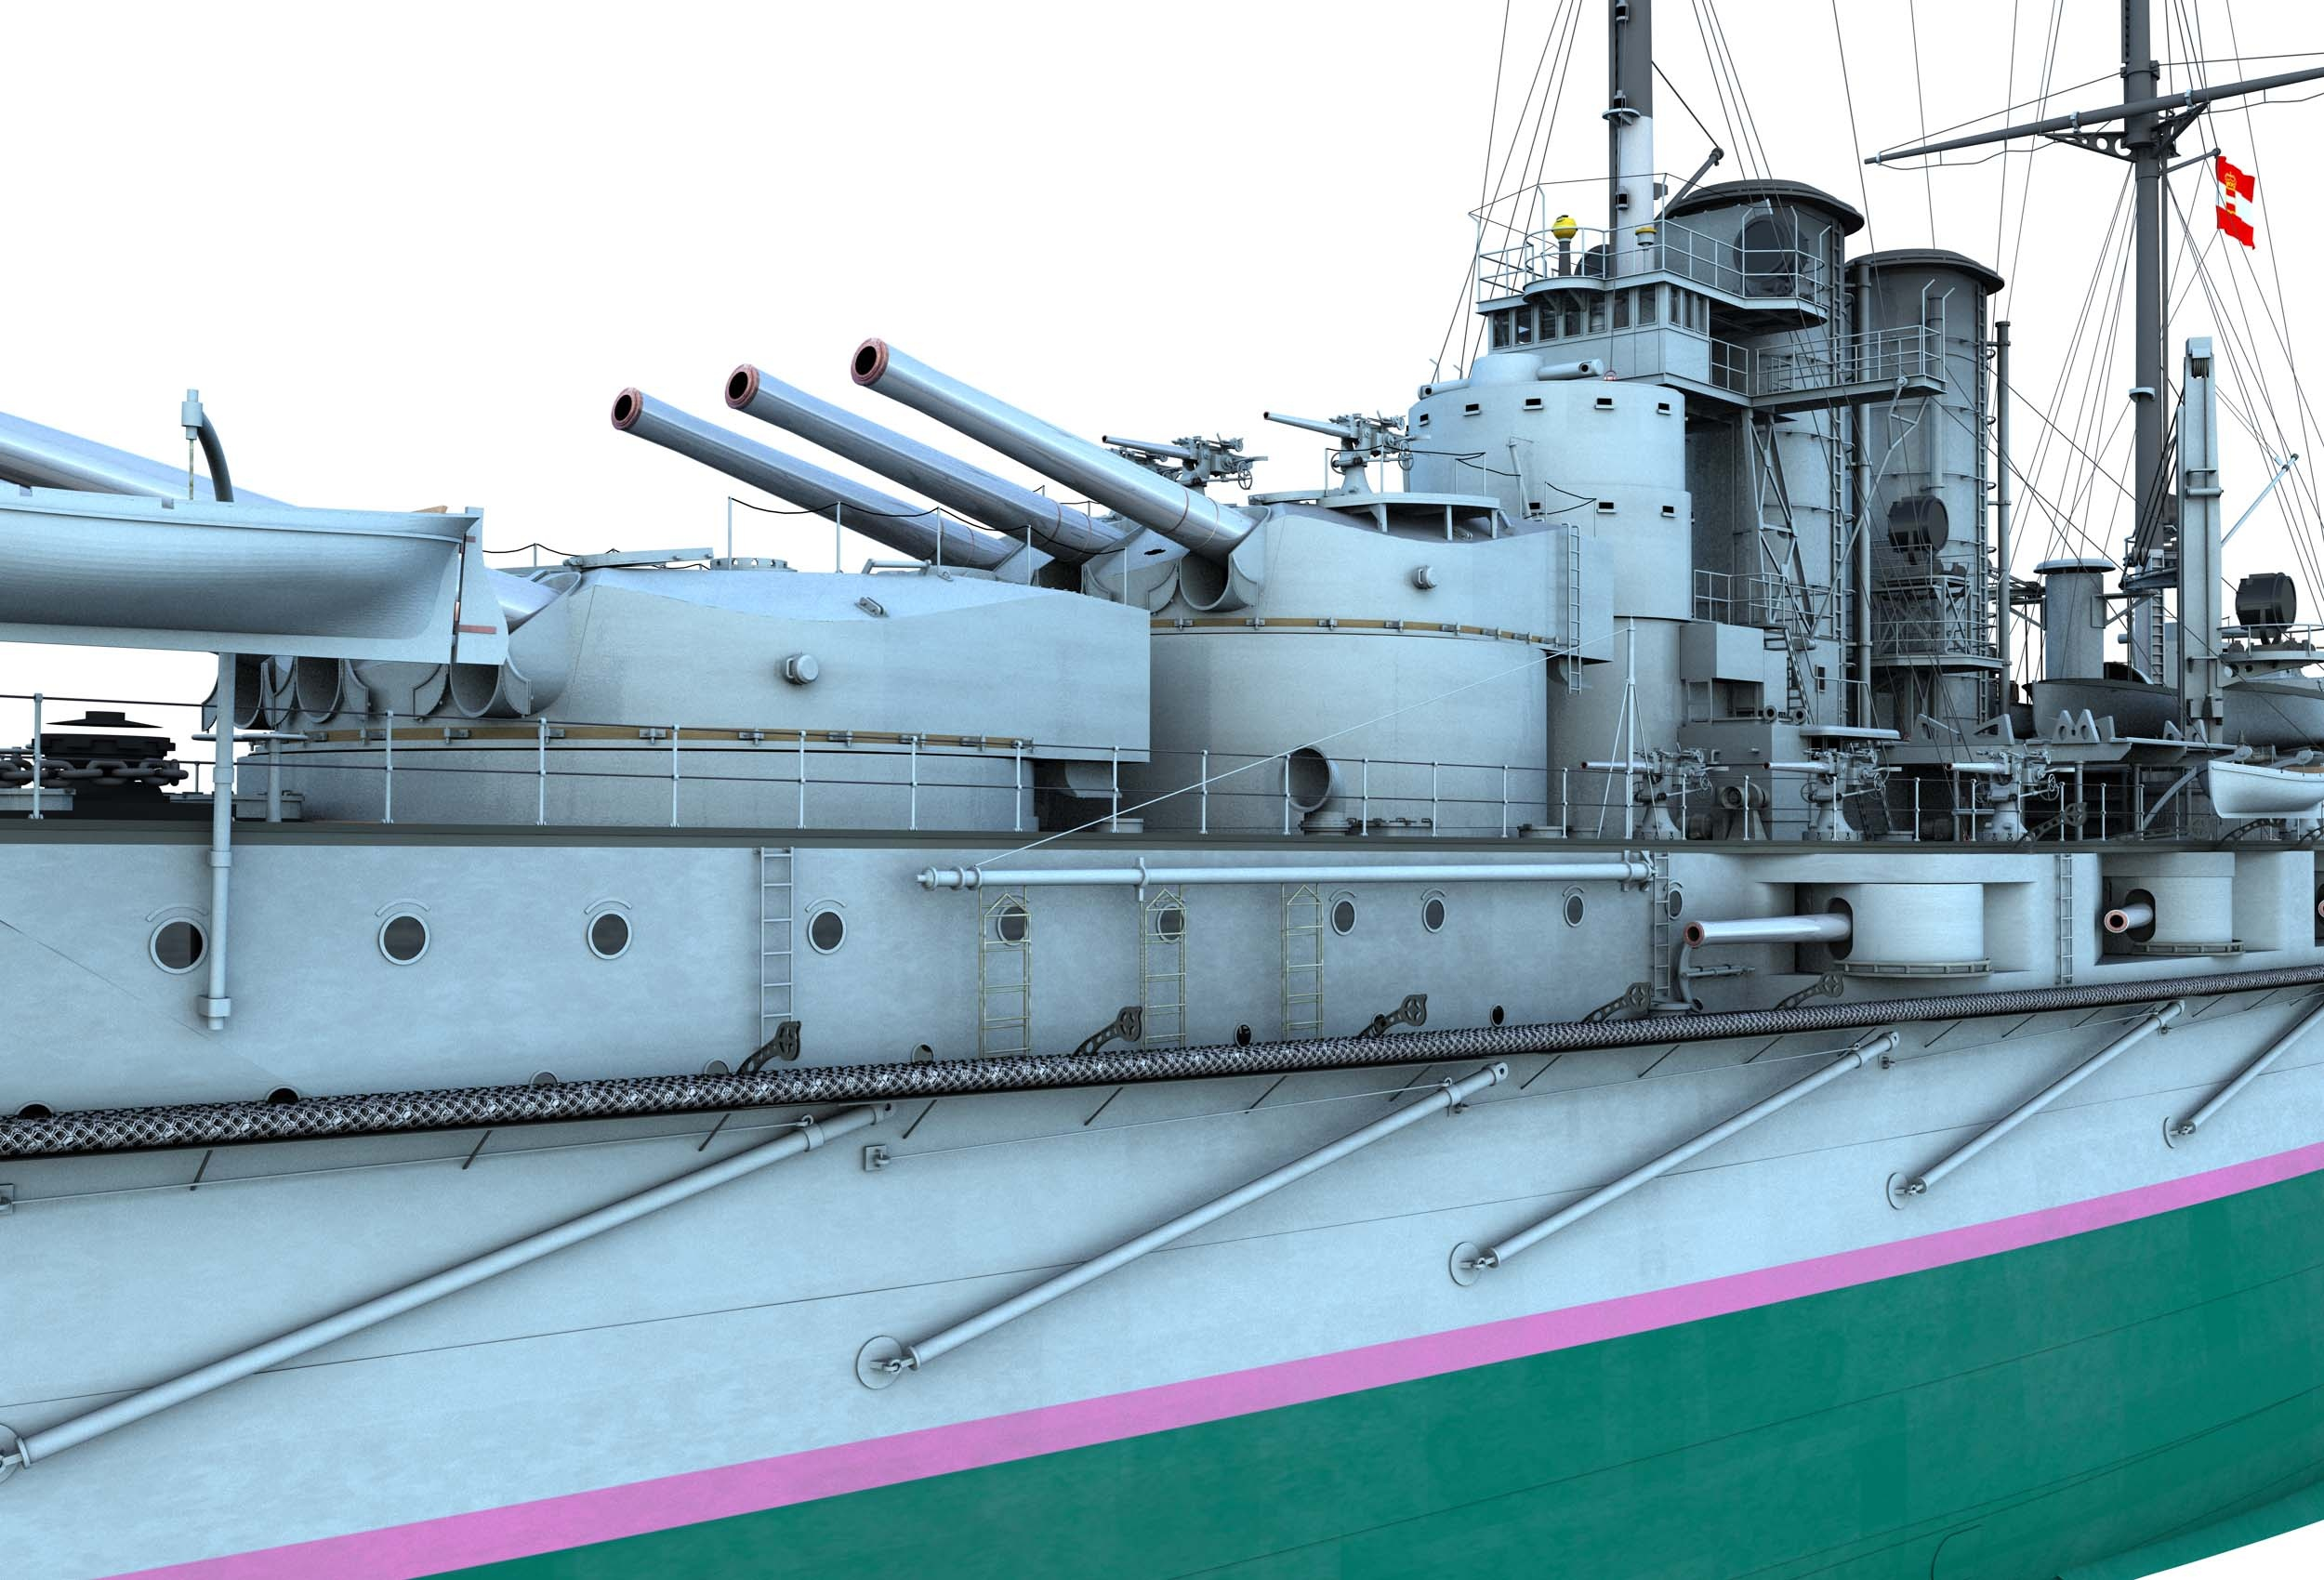 https://0901.nccdn.net/4_2/000/000/038/2d3/CK24-Partial-Ship-Port-Bow-Close-Turrets-I-and-II-2500x1700.jpg